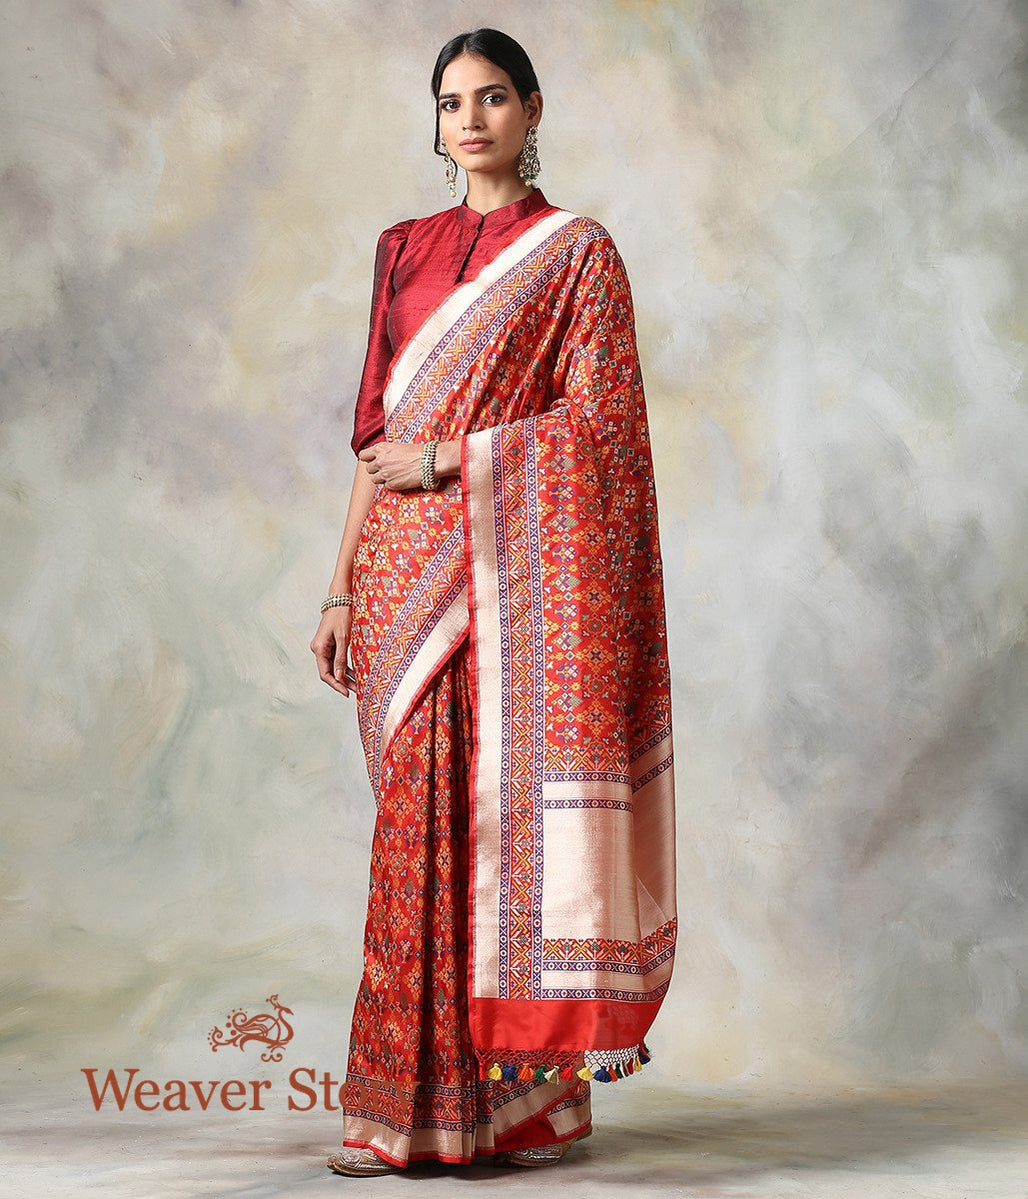 Handwoven Red Meenakari Patola Saree with a Hint of Blue